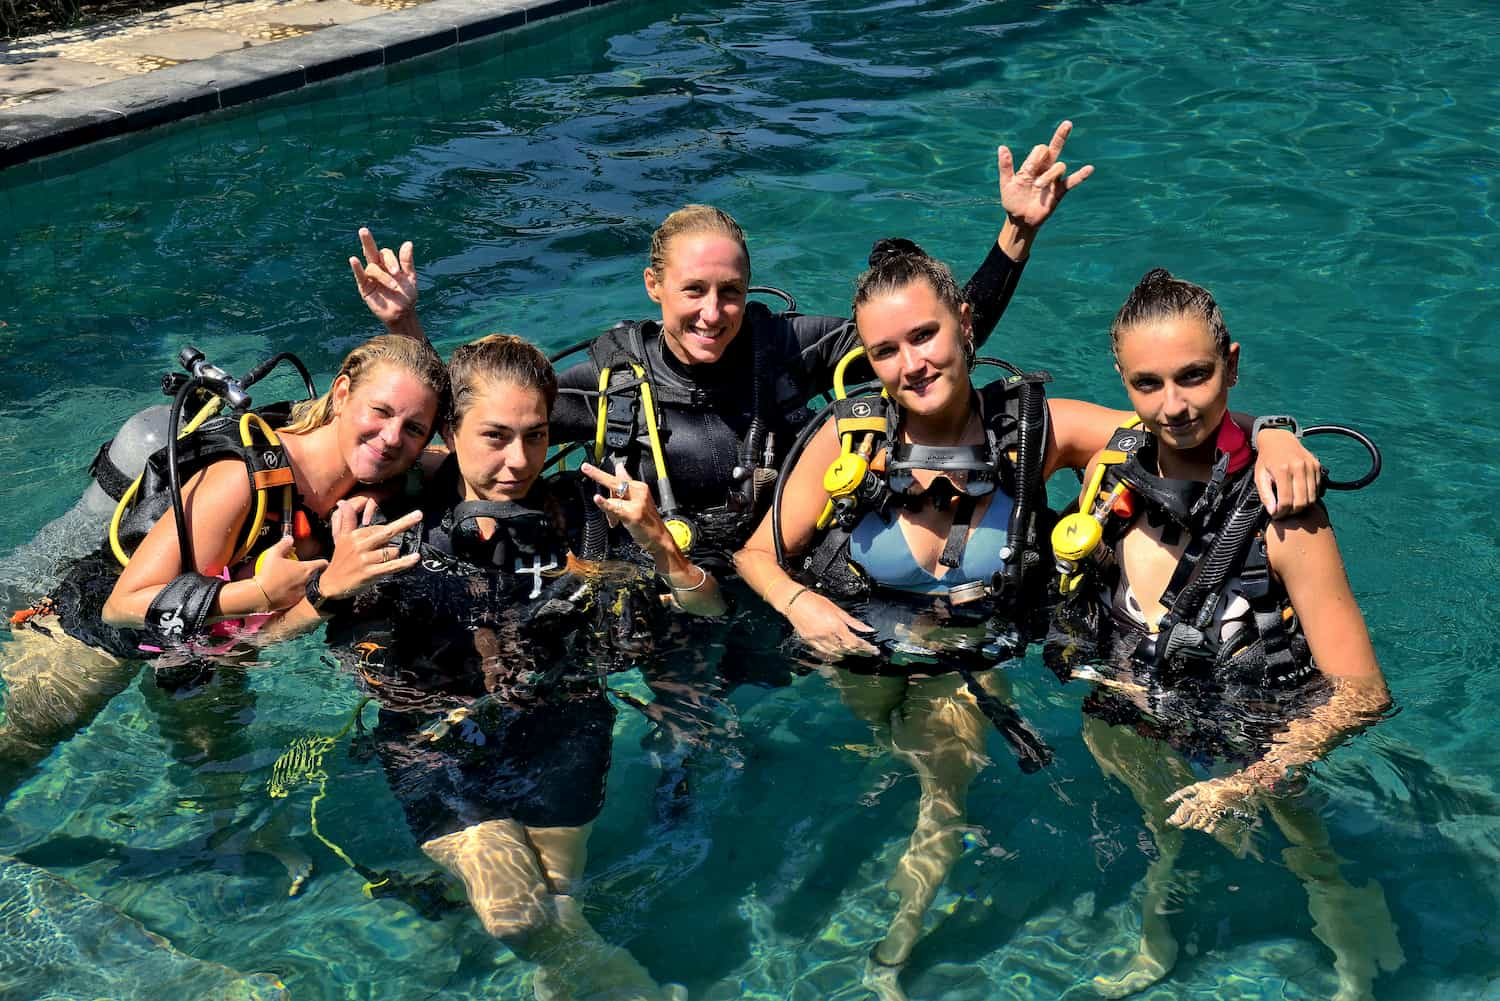 During your Divemaster course you will be teached about the roles and characteristics of a Divemaster